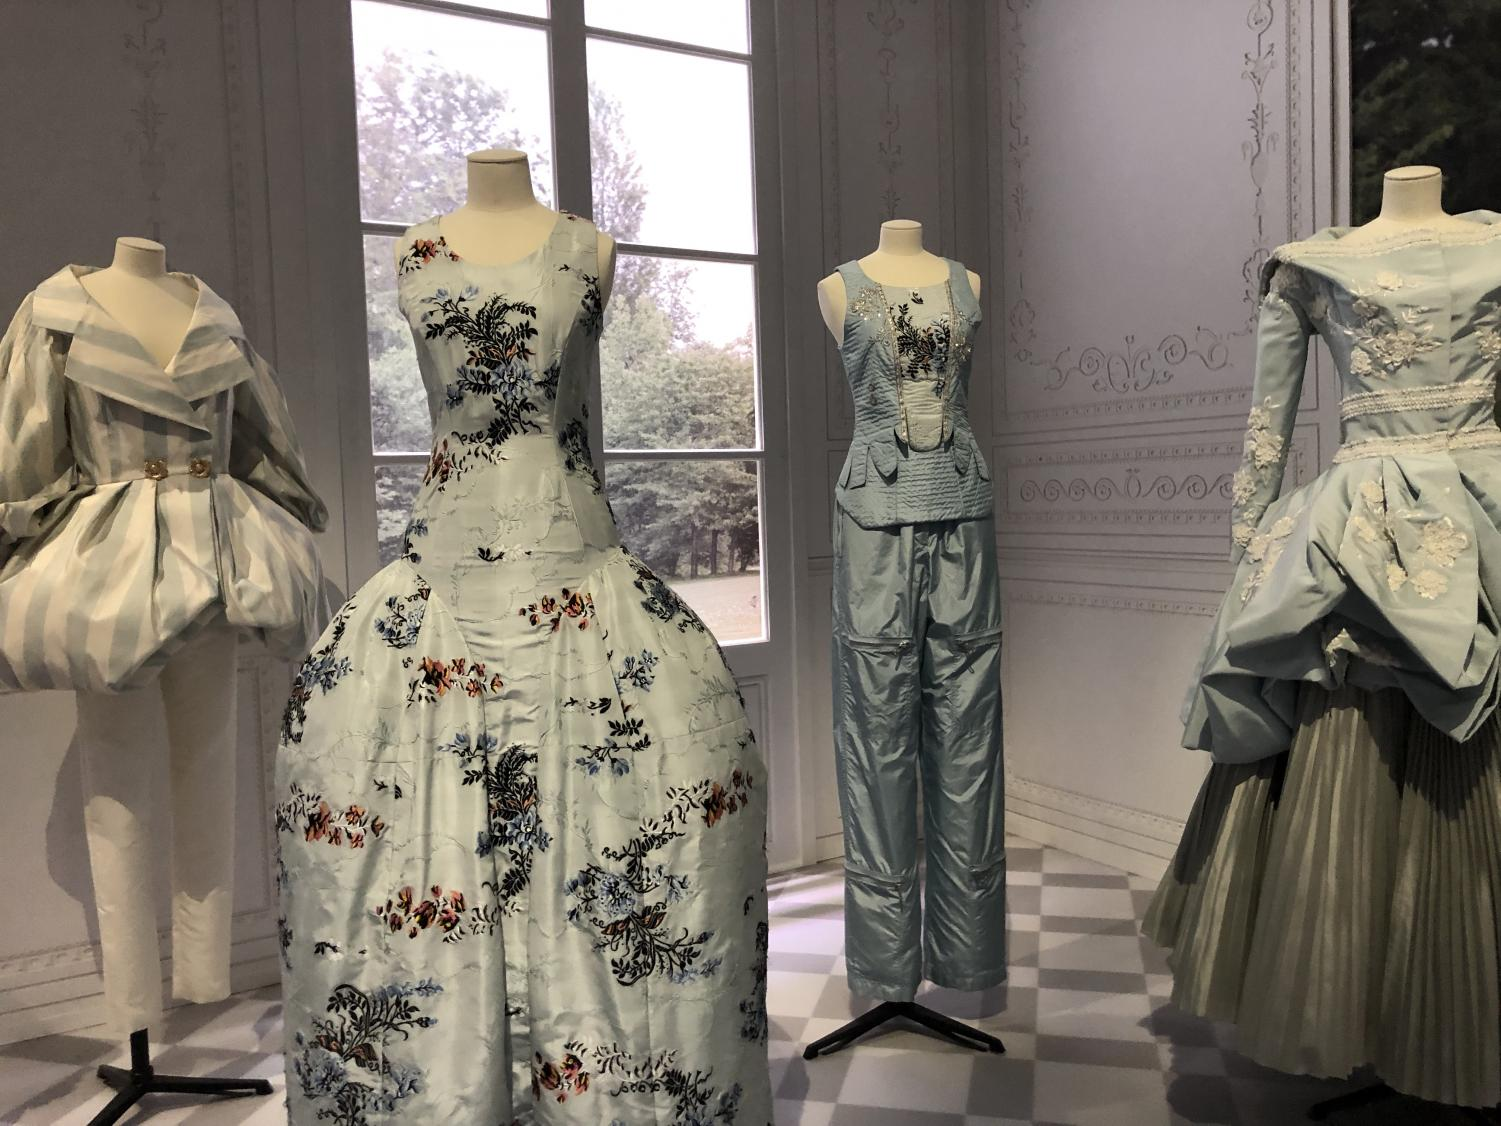 A+photo+of+the+Dior+exhibit+at+the+Victorian+Albert+Museum+in+London.+